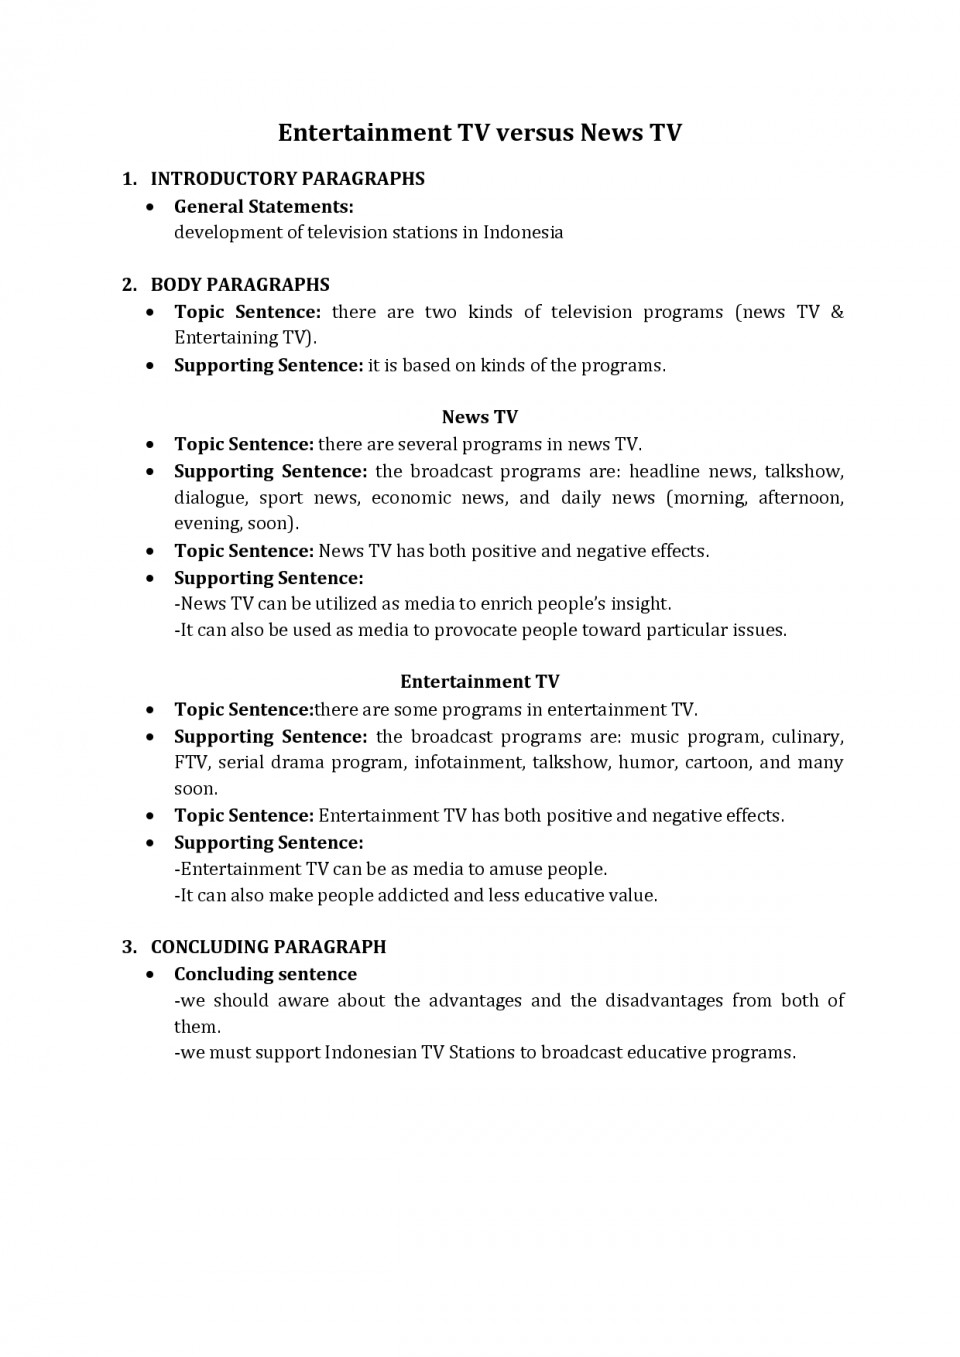 005 Fbunmxinib How To Write An Essay Outline Excellent In Mla Format For University 960